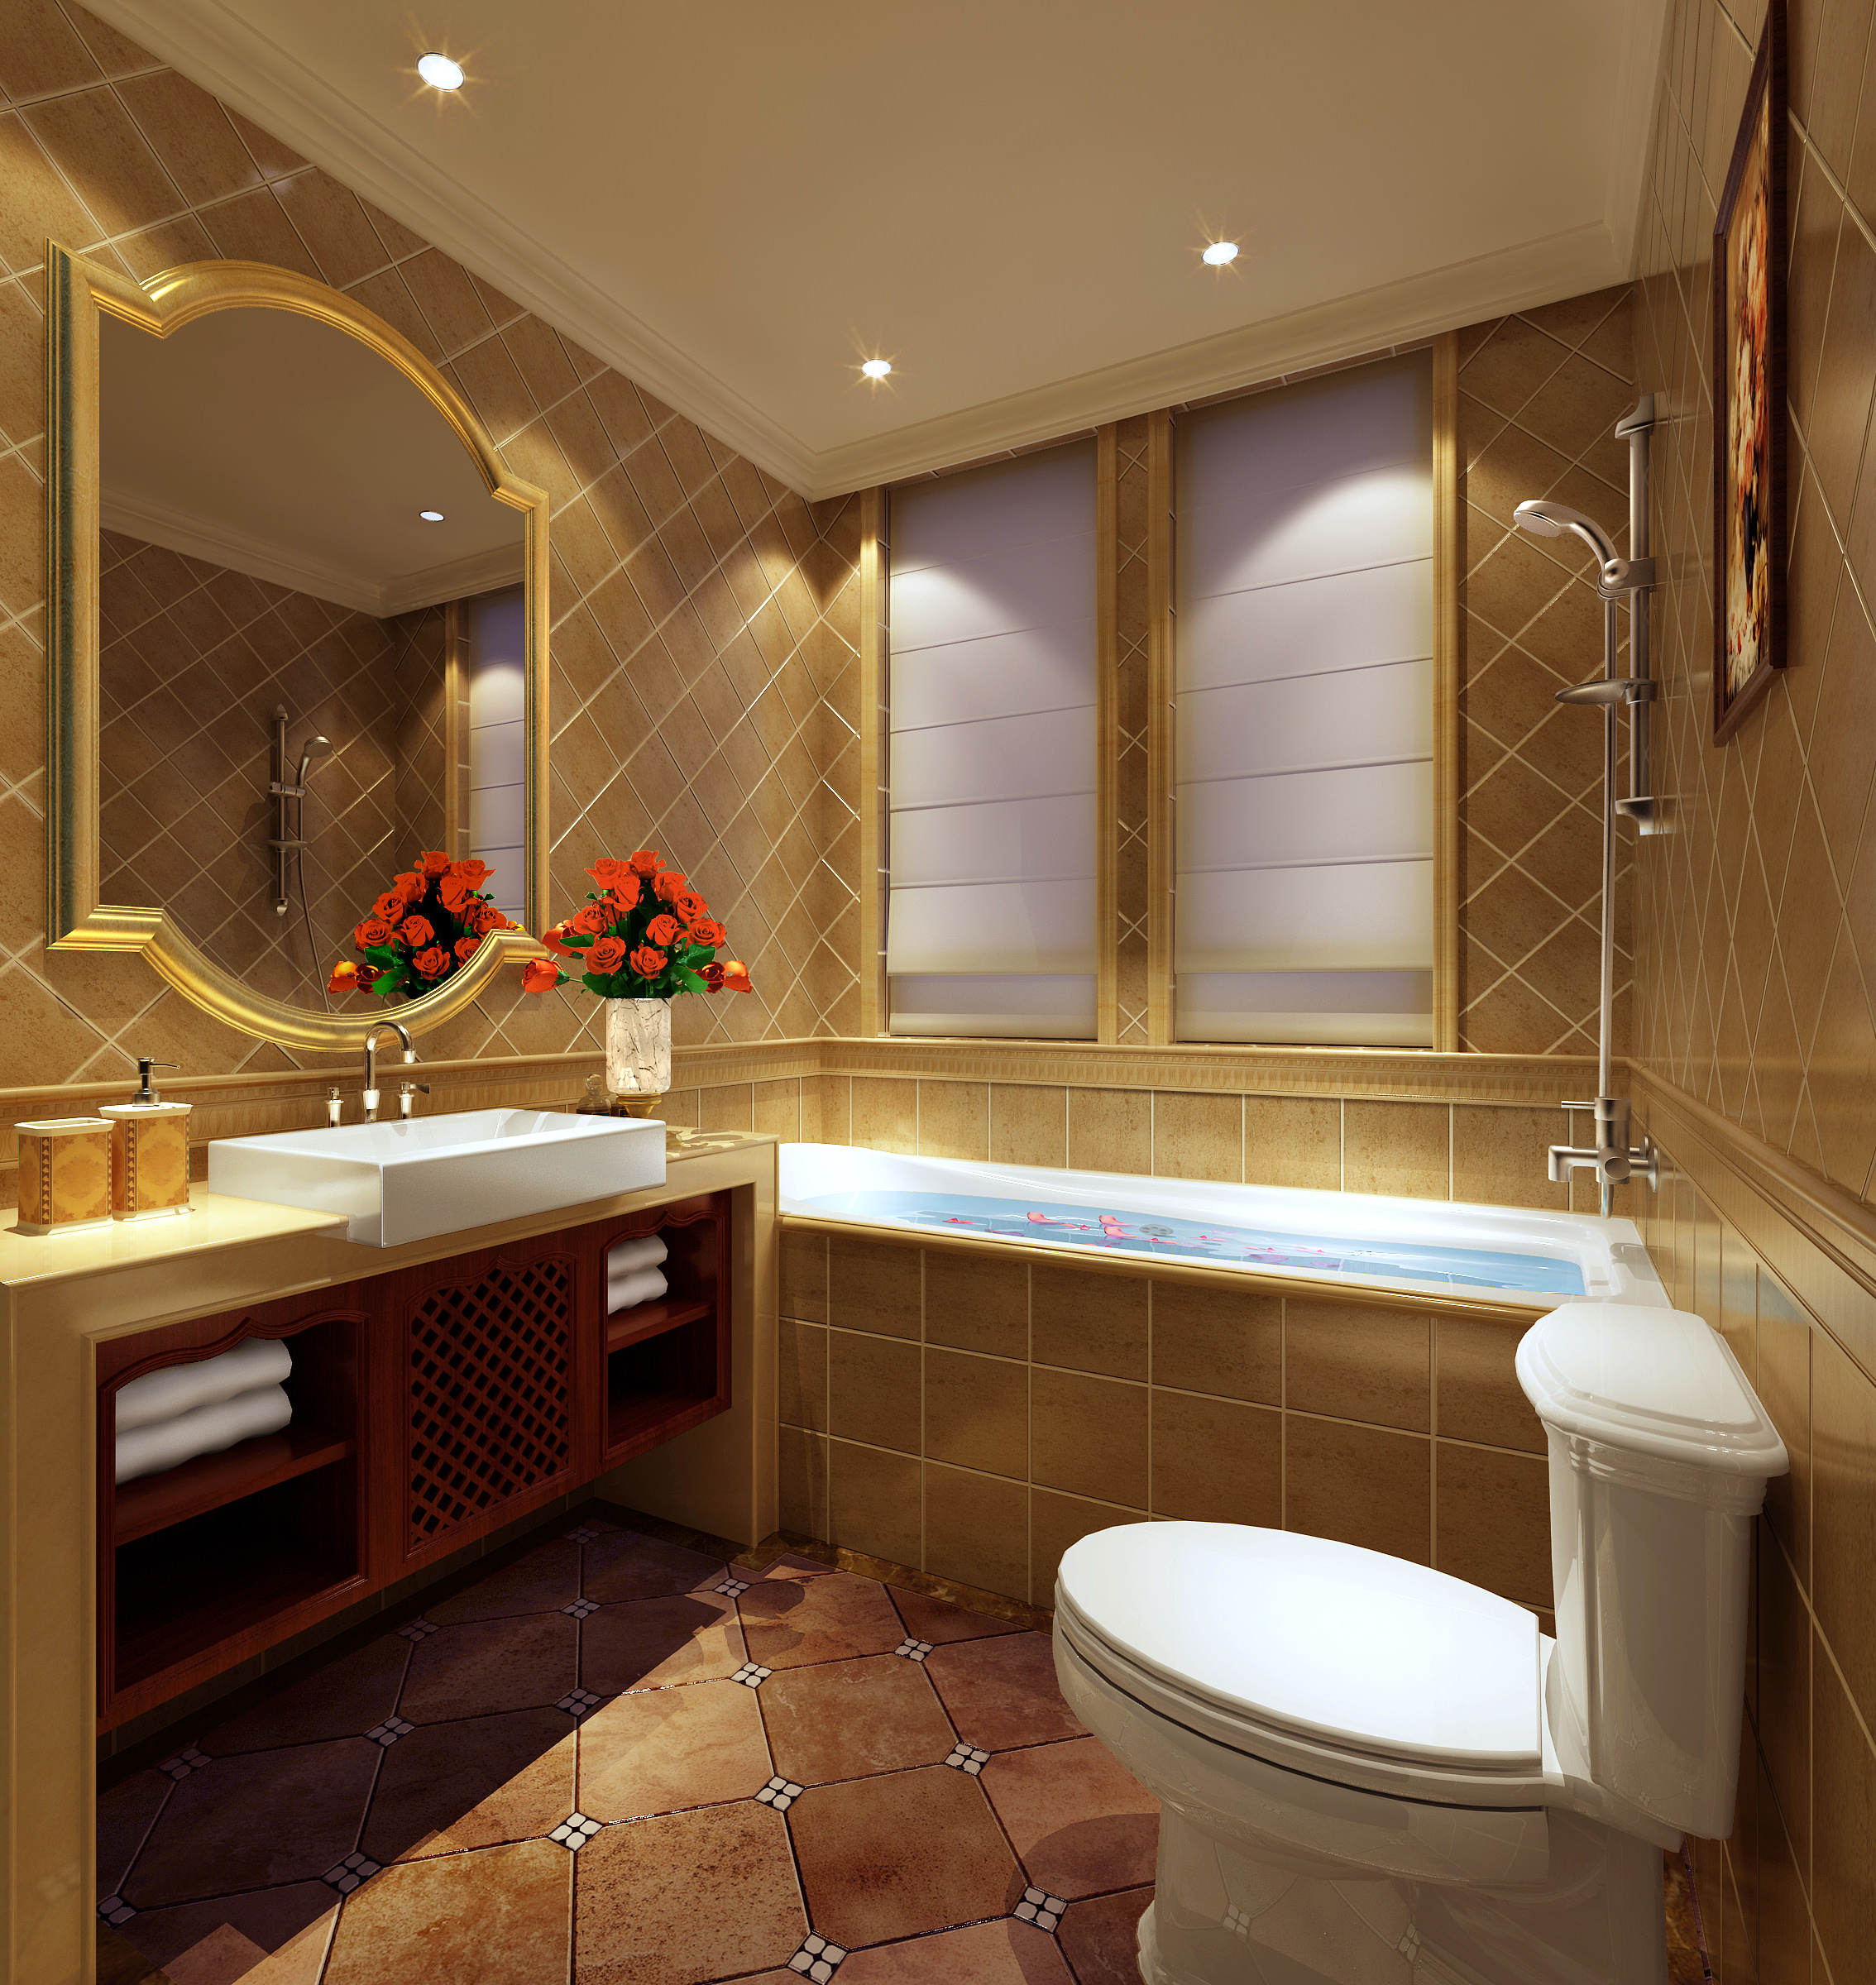 Luxury bathroom 3d model max for Luxury home models